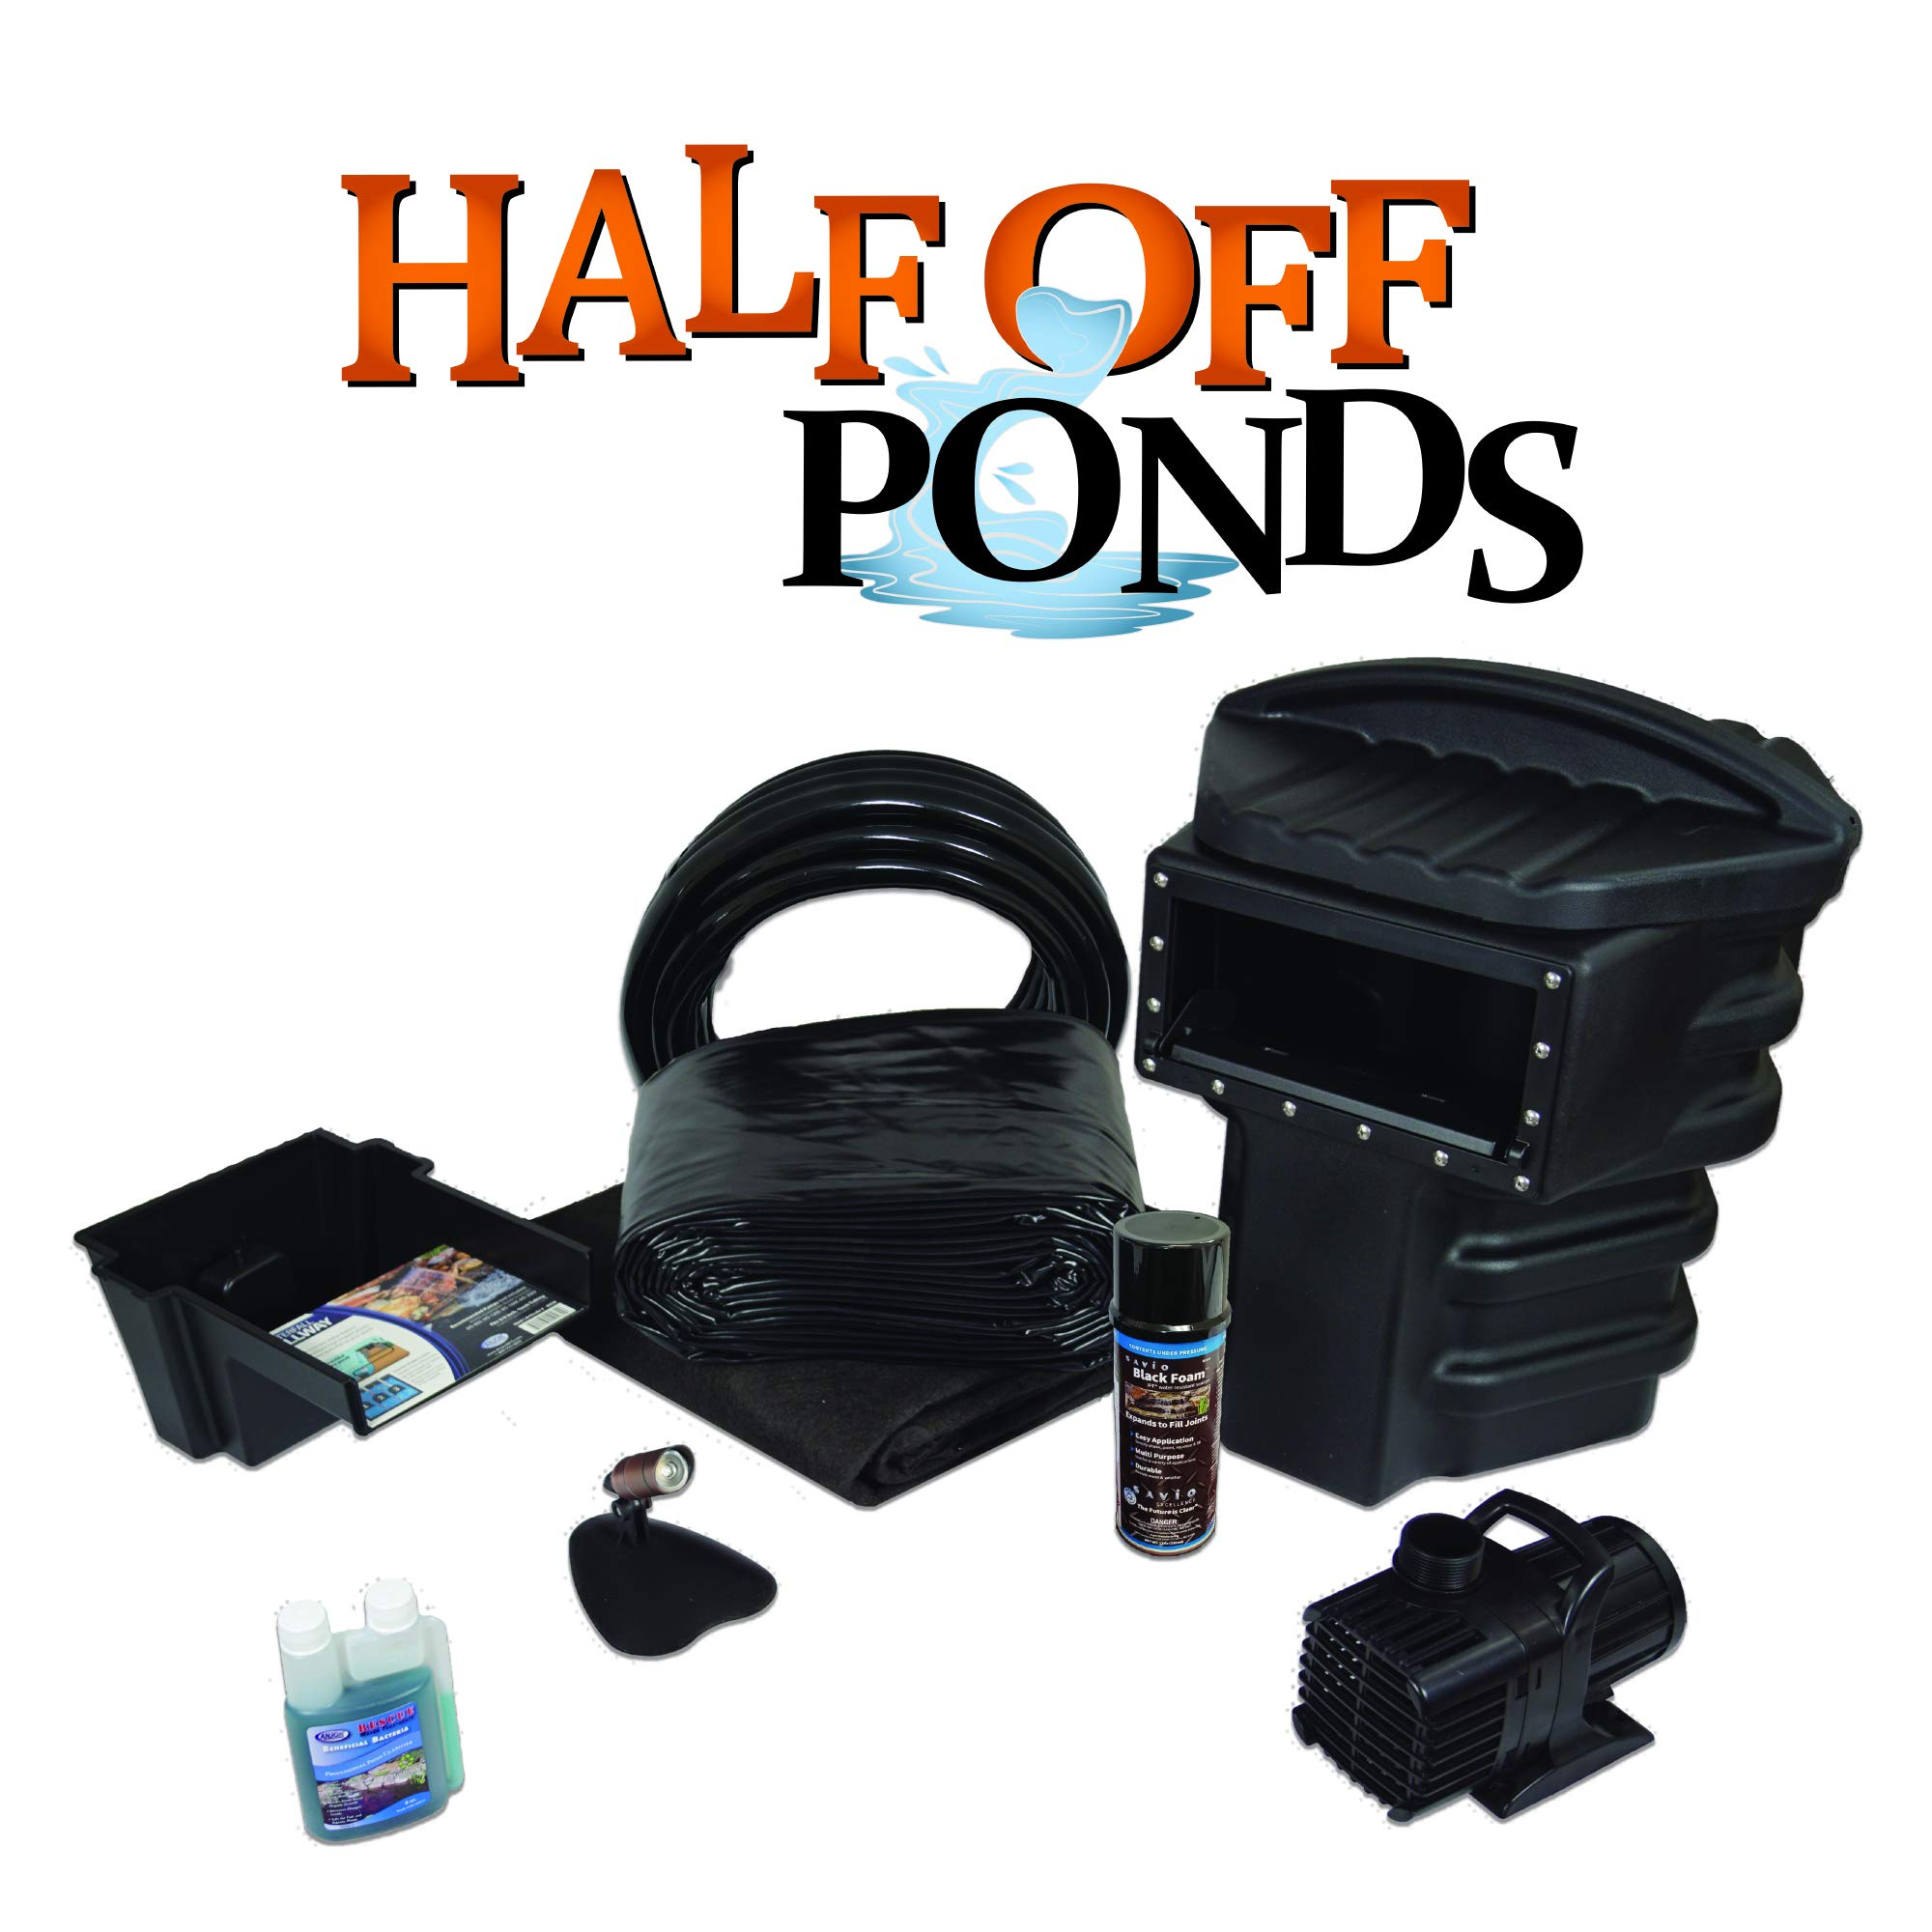 Simply Ponds 1200 Water Garden and Pond Kit with 8 Foot x 10 Foot PVC Liner by Half Off Ponds (Image #6)